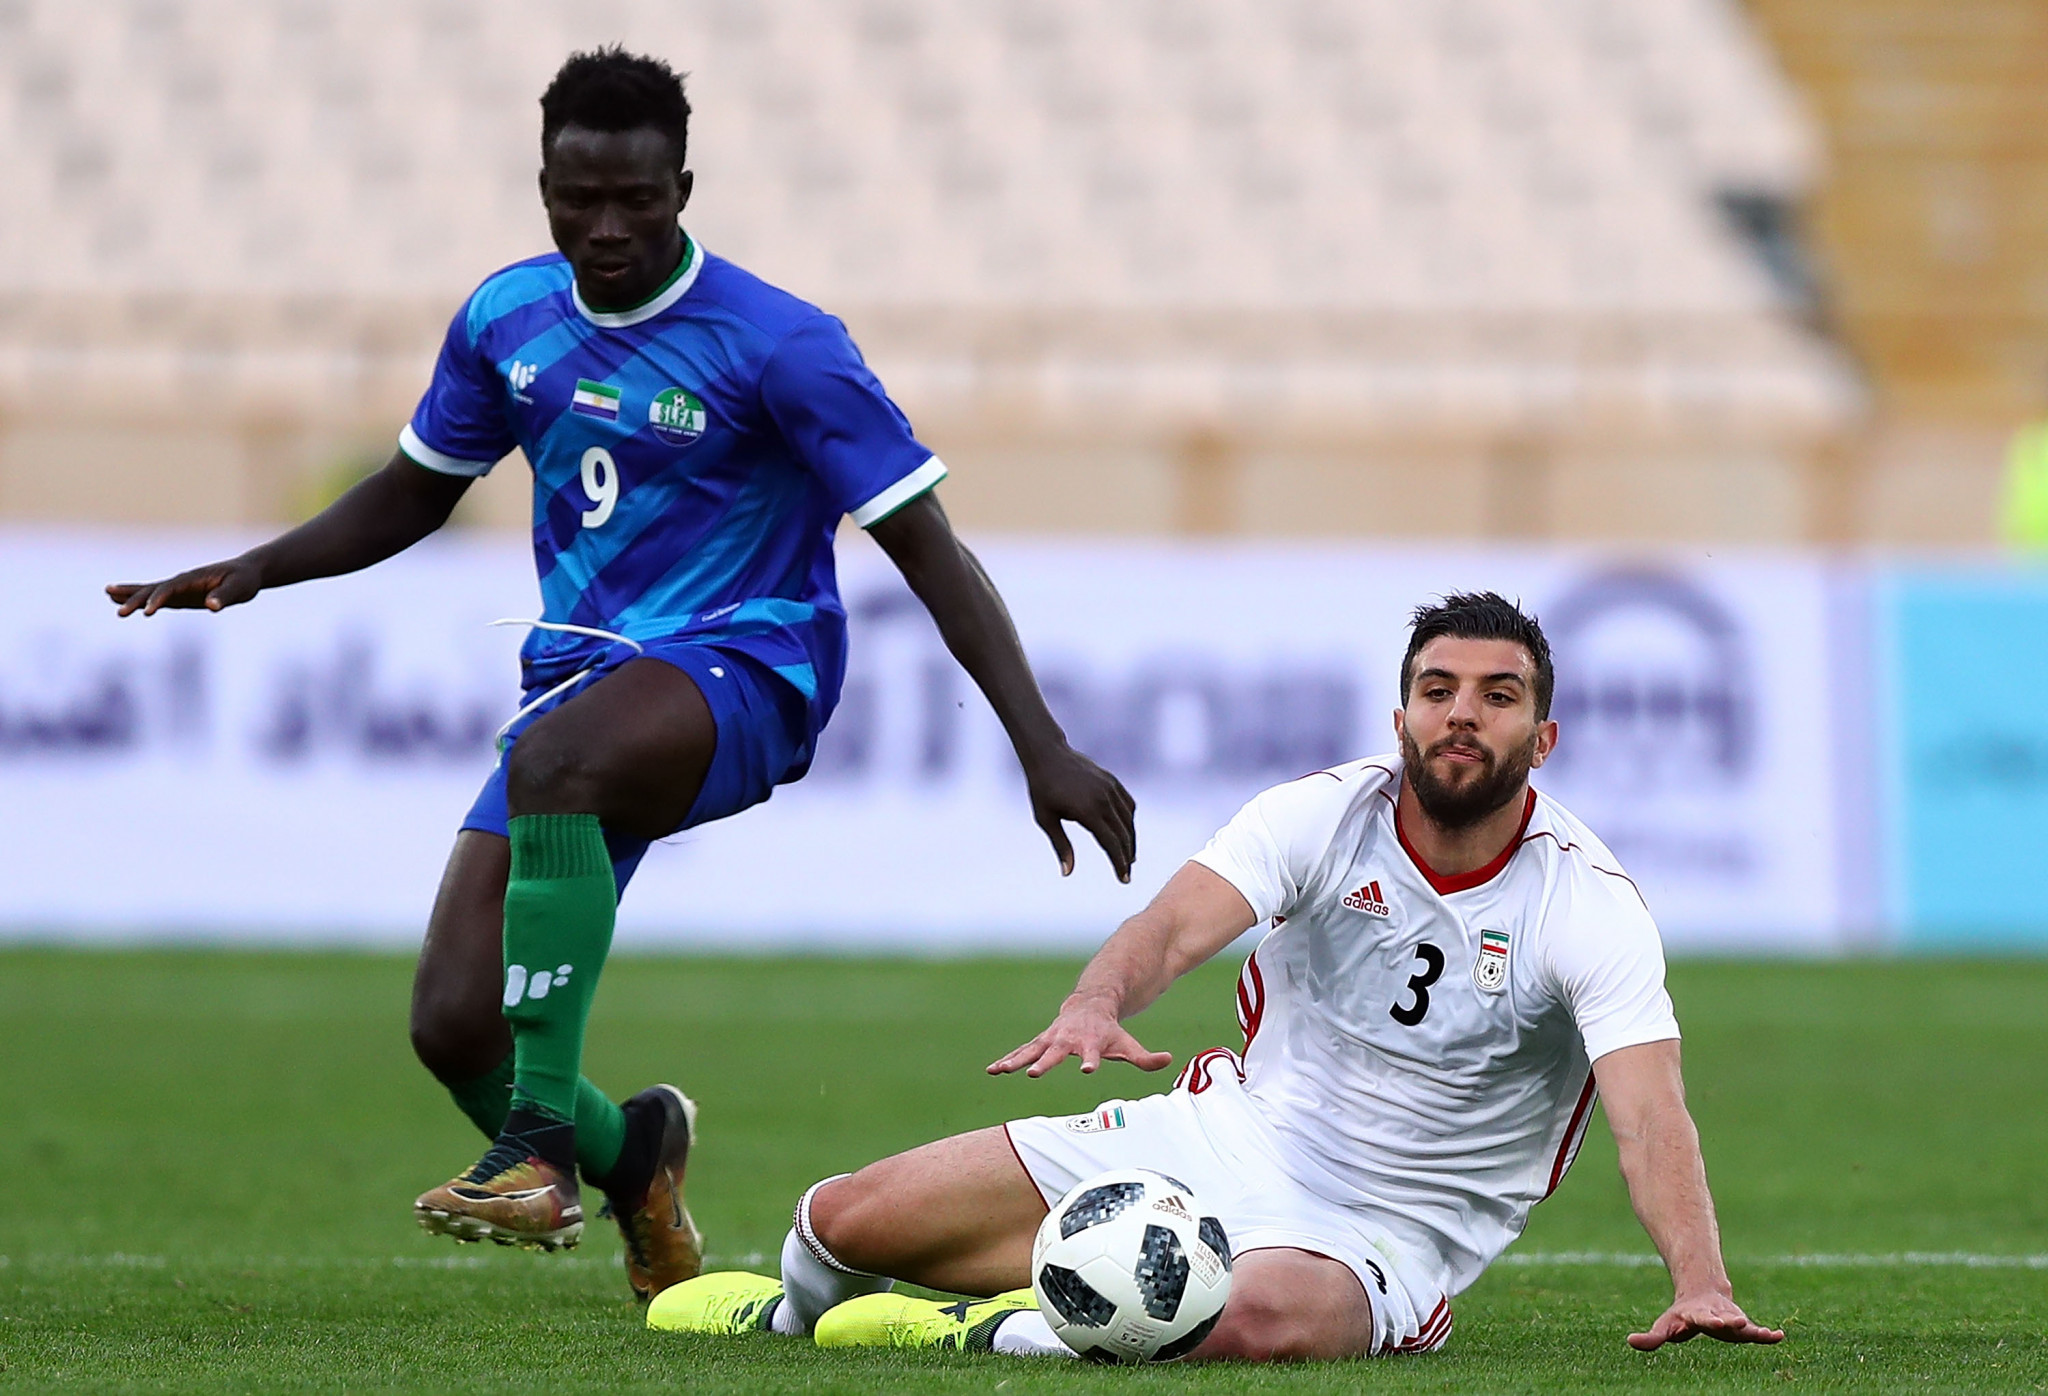 Sierra Leone are due to face Benin in the final Africa Cup of Nations qualifier ©Getty Images